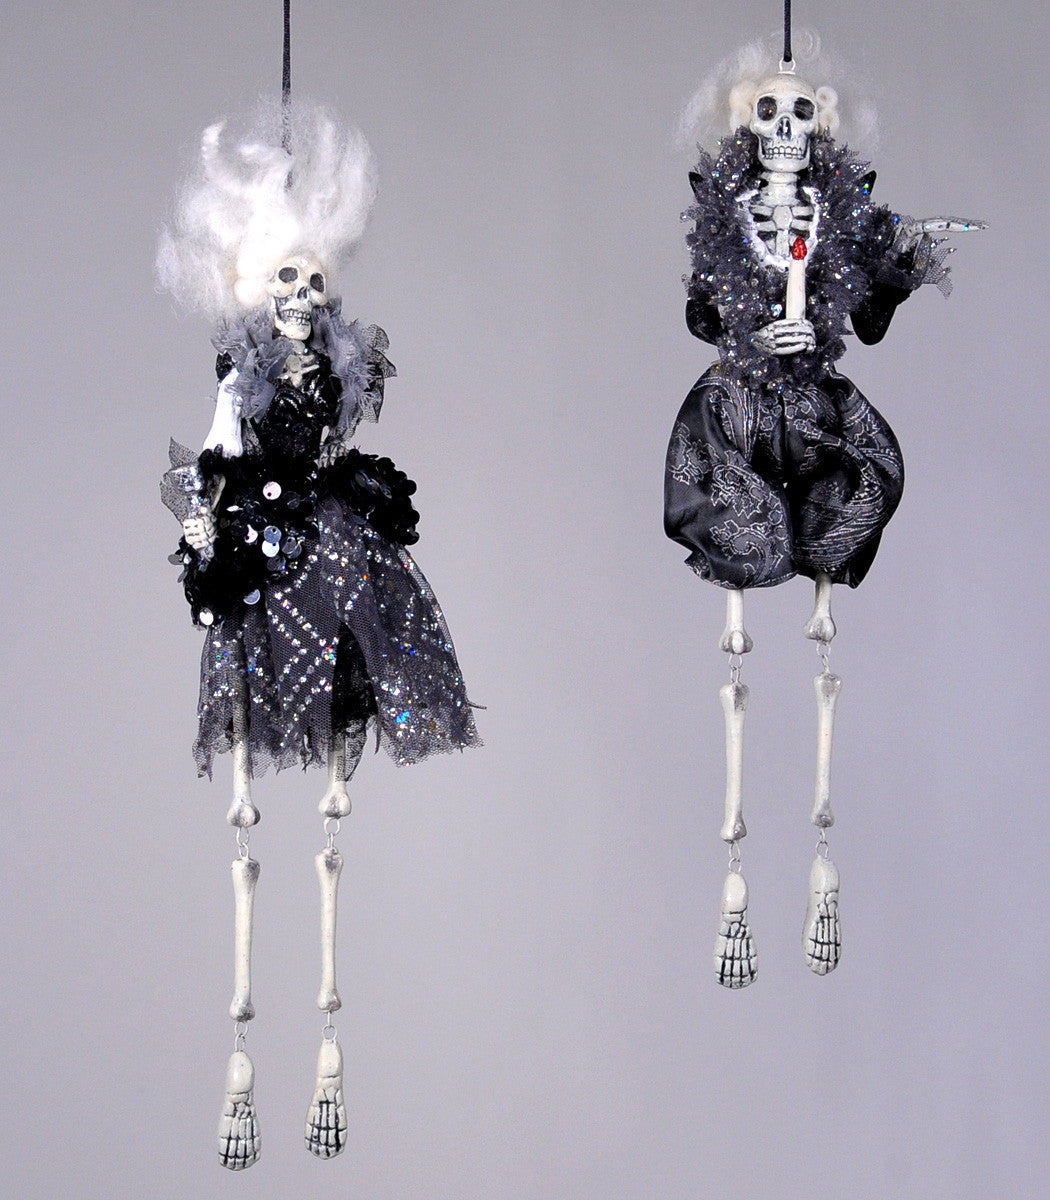 Hollywood Rock Star Skeleton Dangle Ornaments - Katherine's Collection Halloween